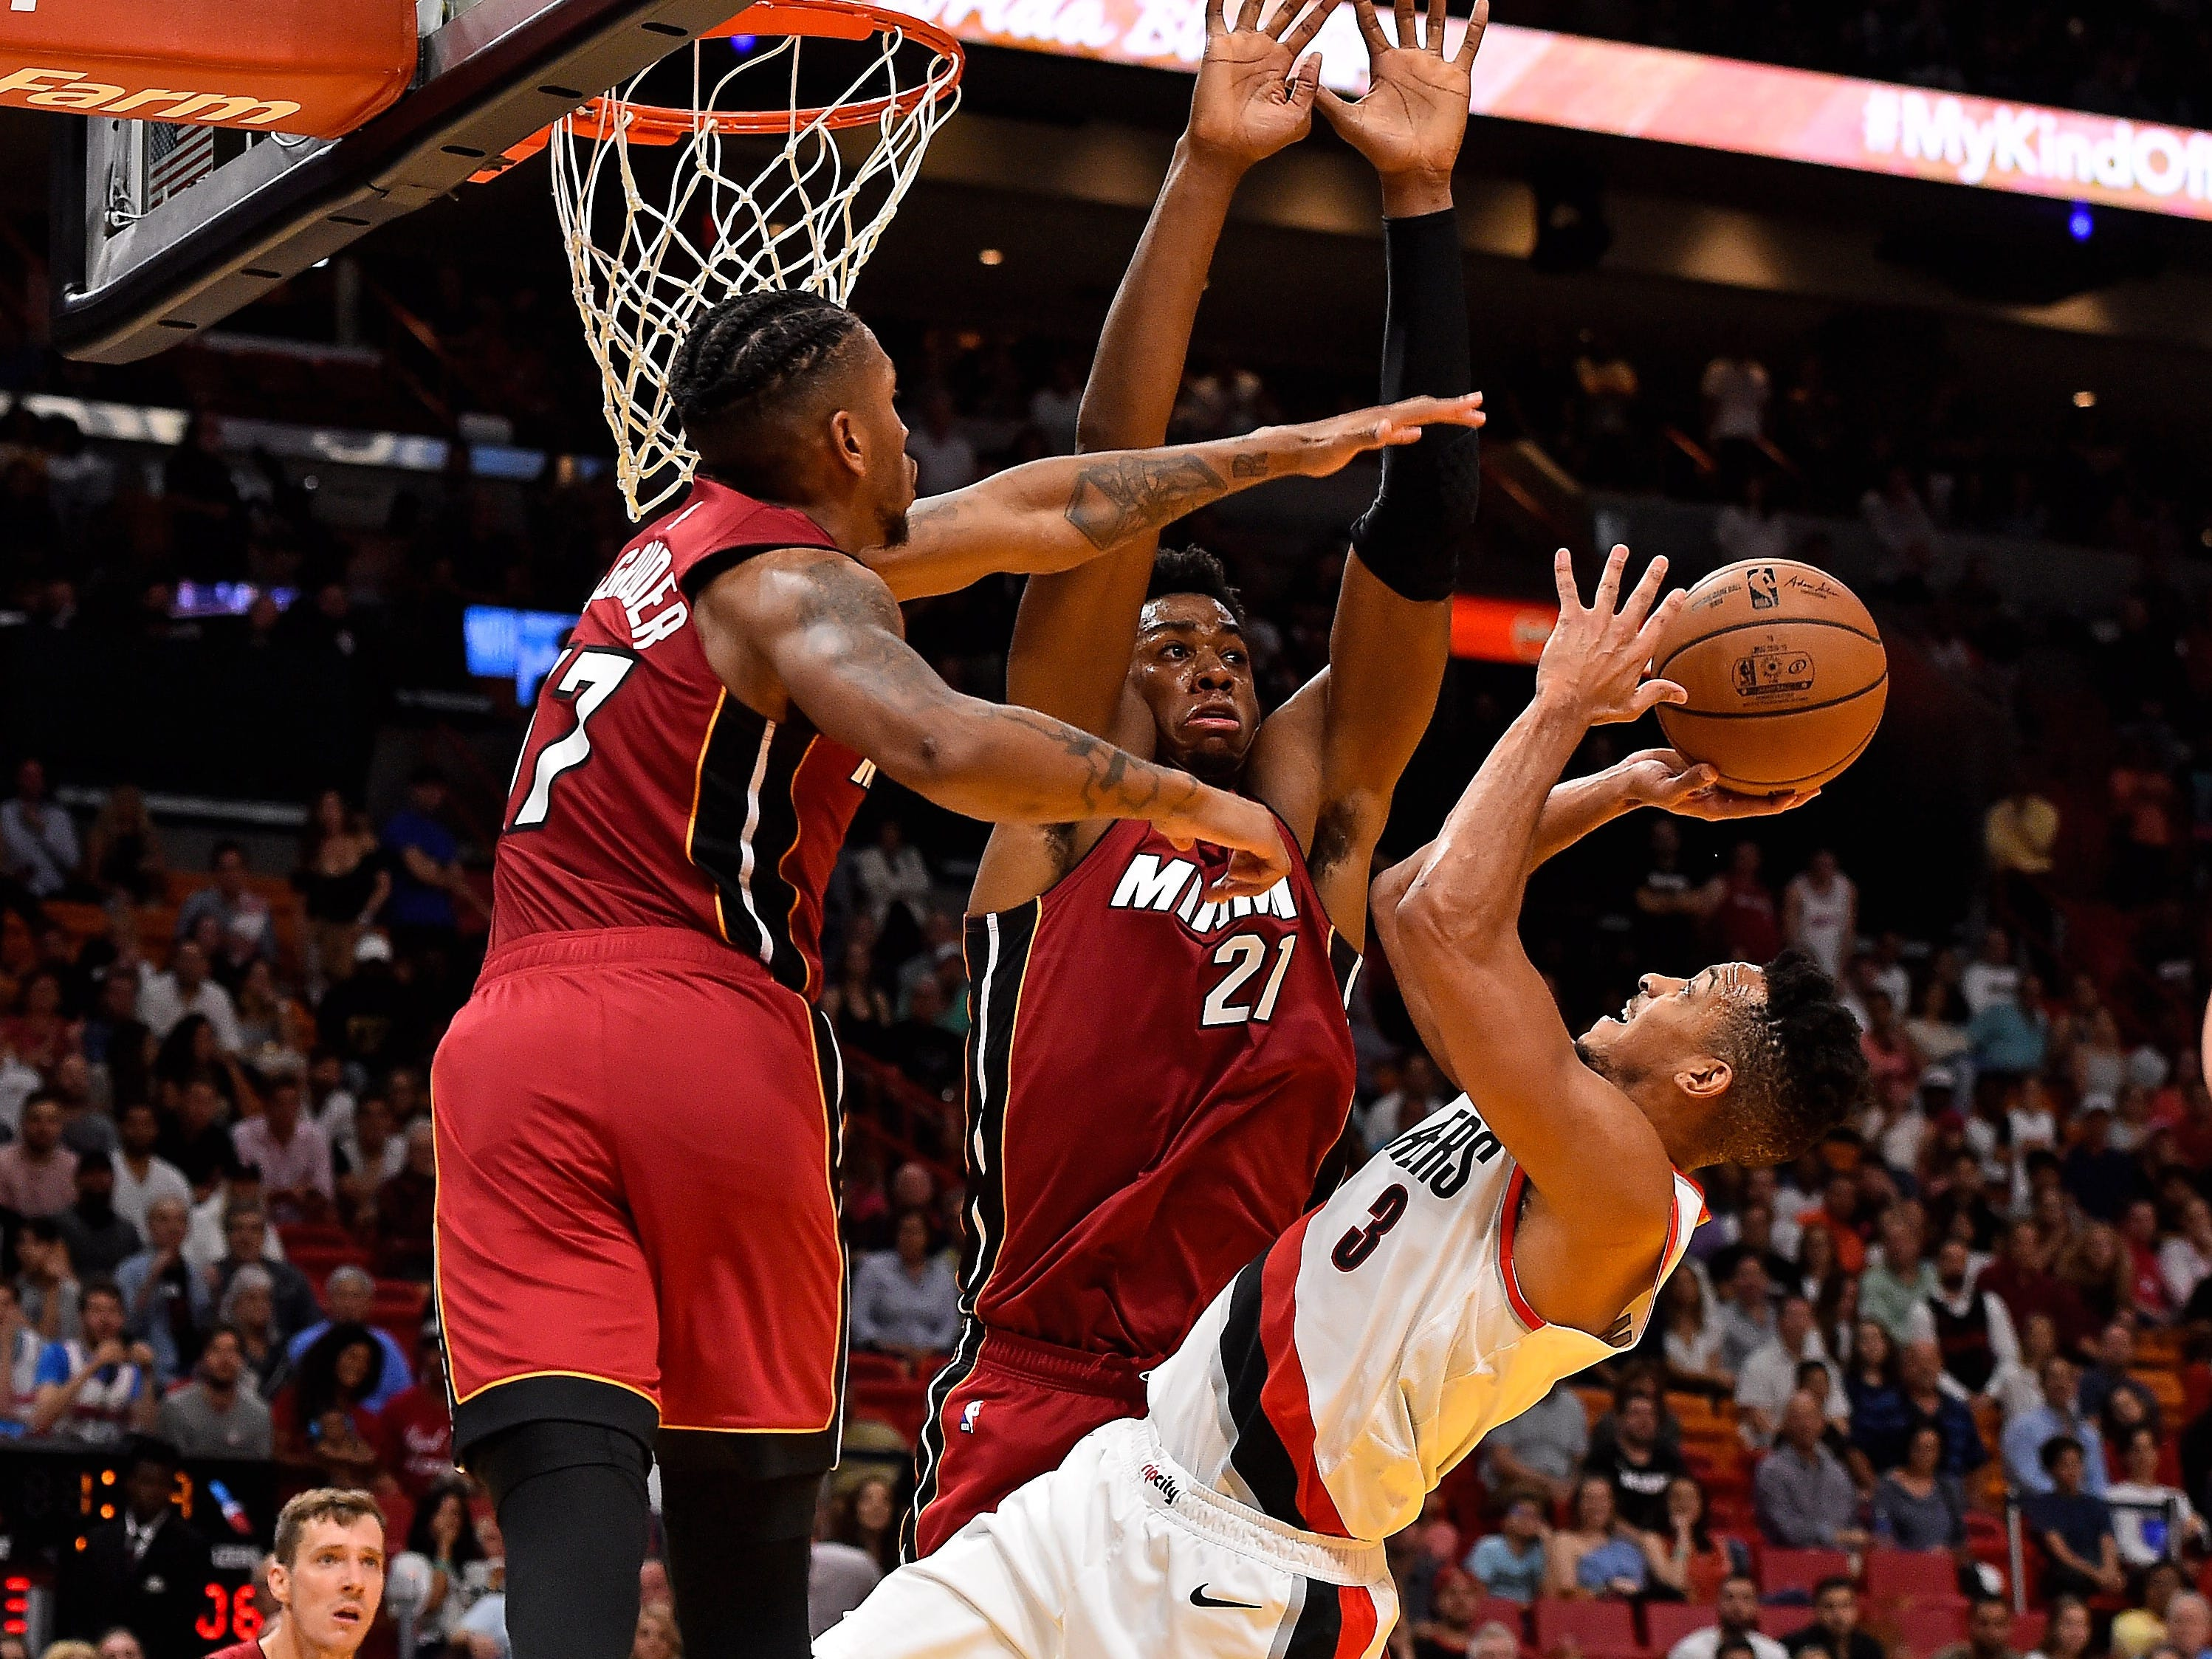 Oct. 27: Trail Blazers guard C.J. McCollum (3) tries to shoot over the double-team of Heat defenders Rodney McGruder (17) and Hassan Whiteside (21) during the second half in Miami.